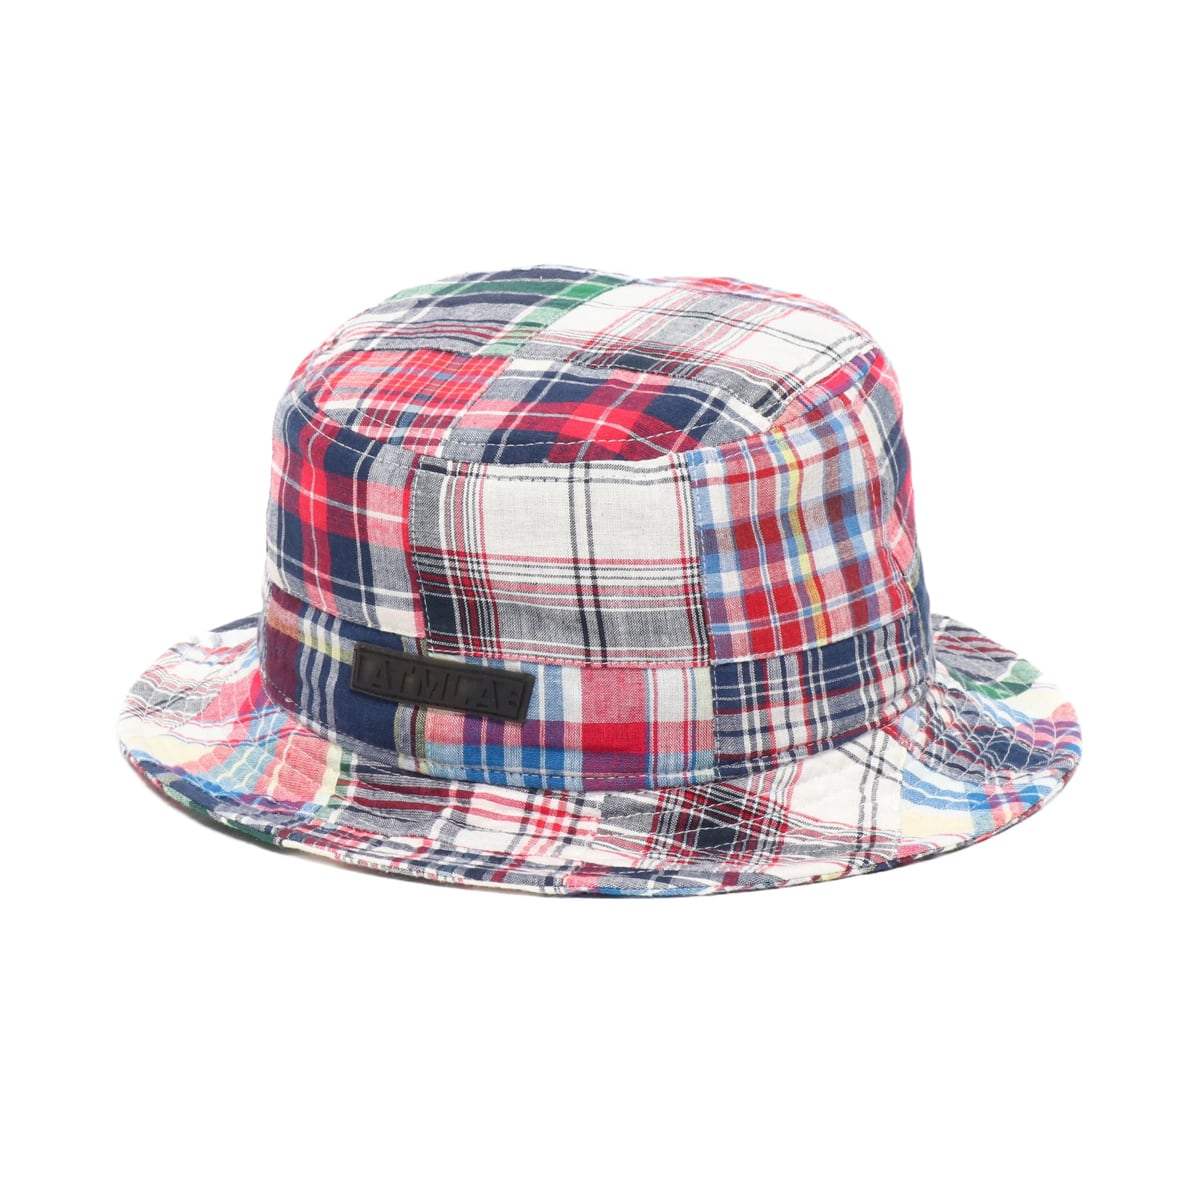 ATMOS LAB PATCHWORK BUCKET HAT NAVY 19SP-I_photo_large